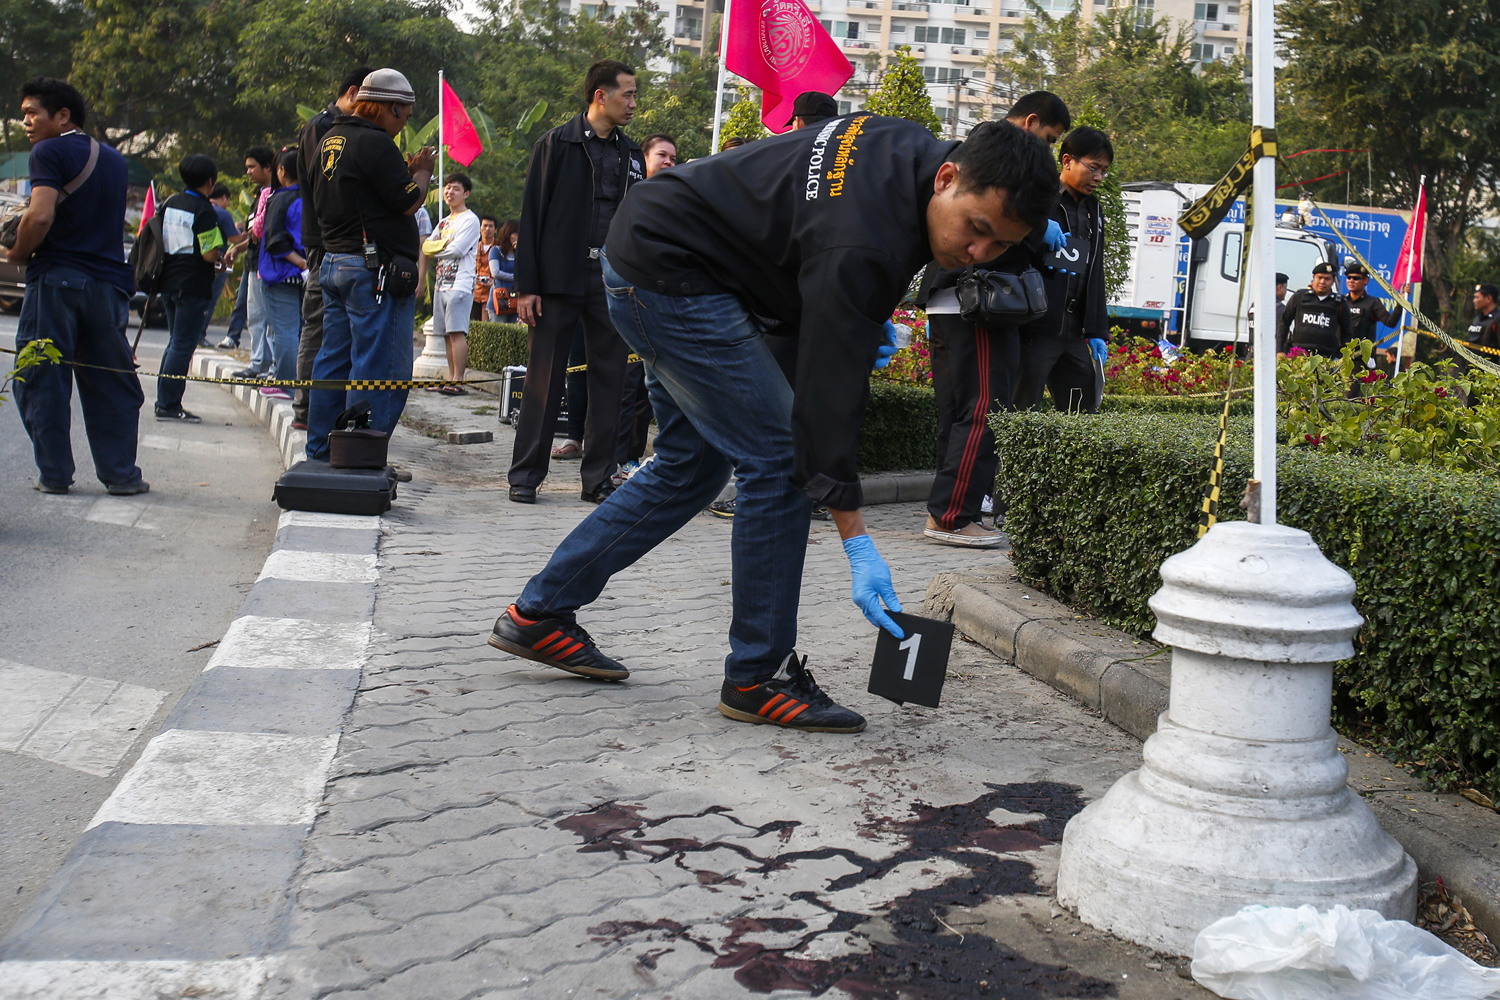 A forensic police officer drops a marker next to blood at the site of what police say were clashes between anti-government protesters and supporters of Prime Minister Yingluck Shinawatra in Bangkok January 26, 2014